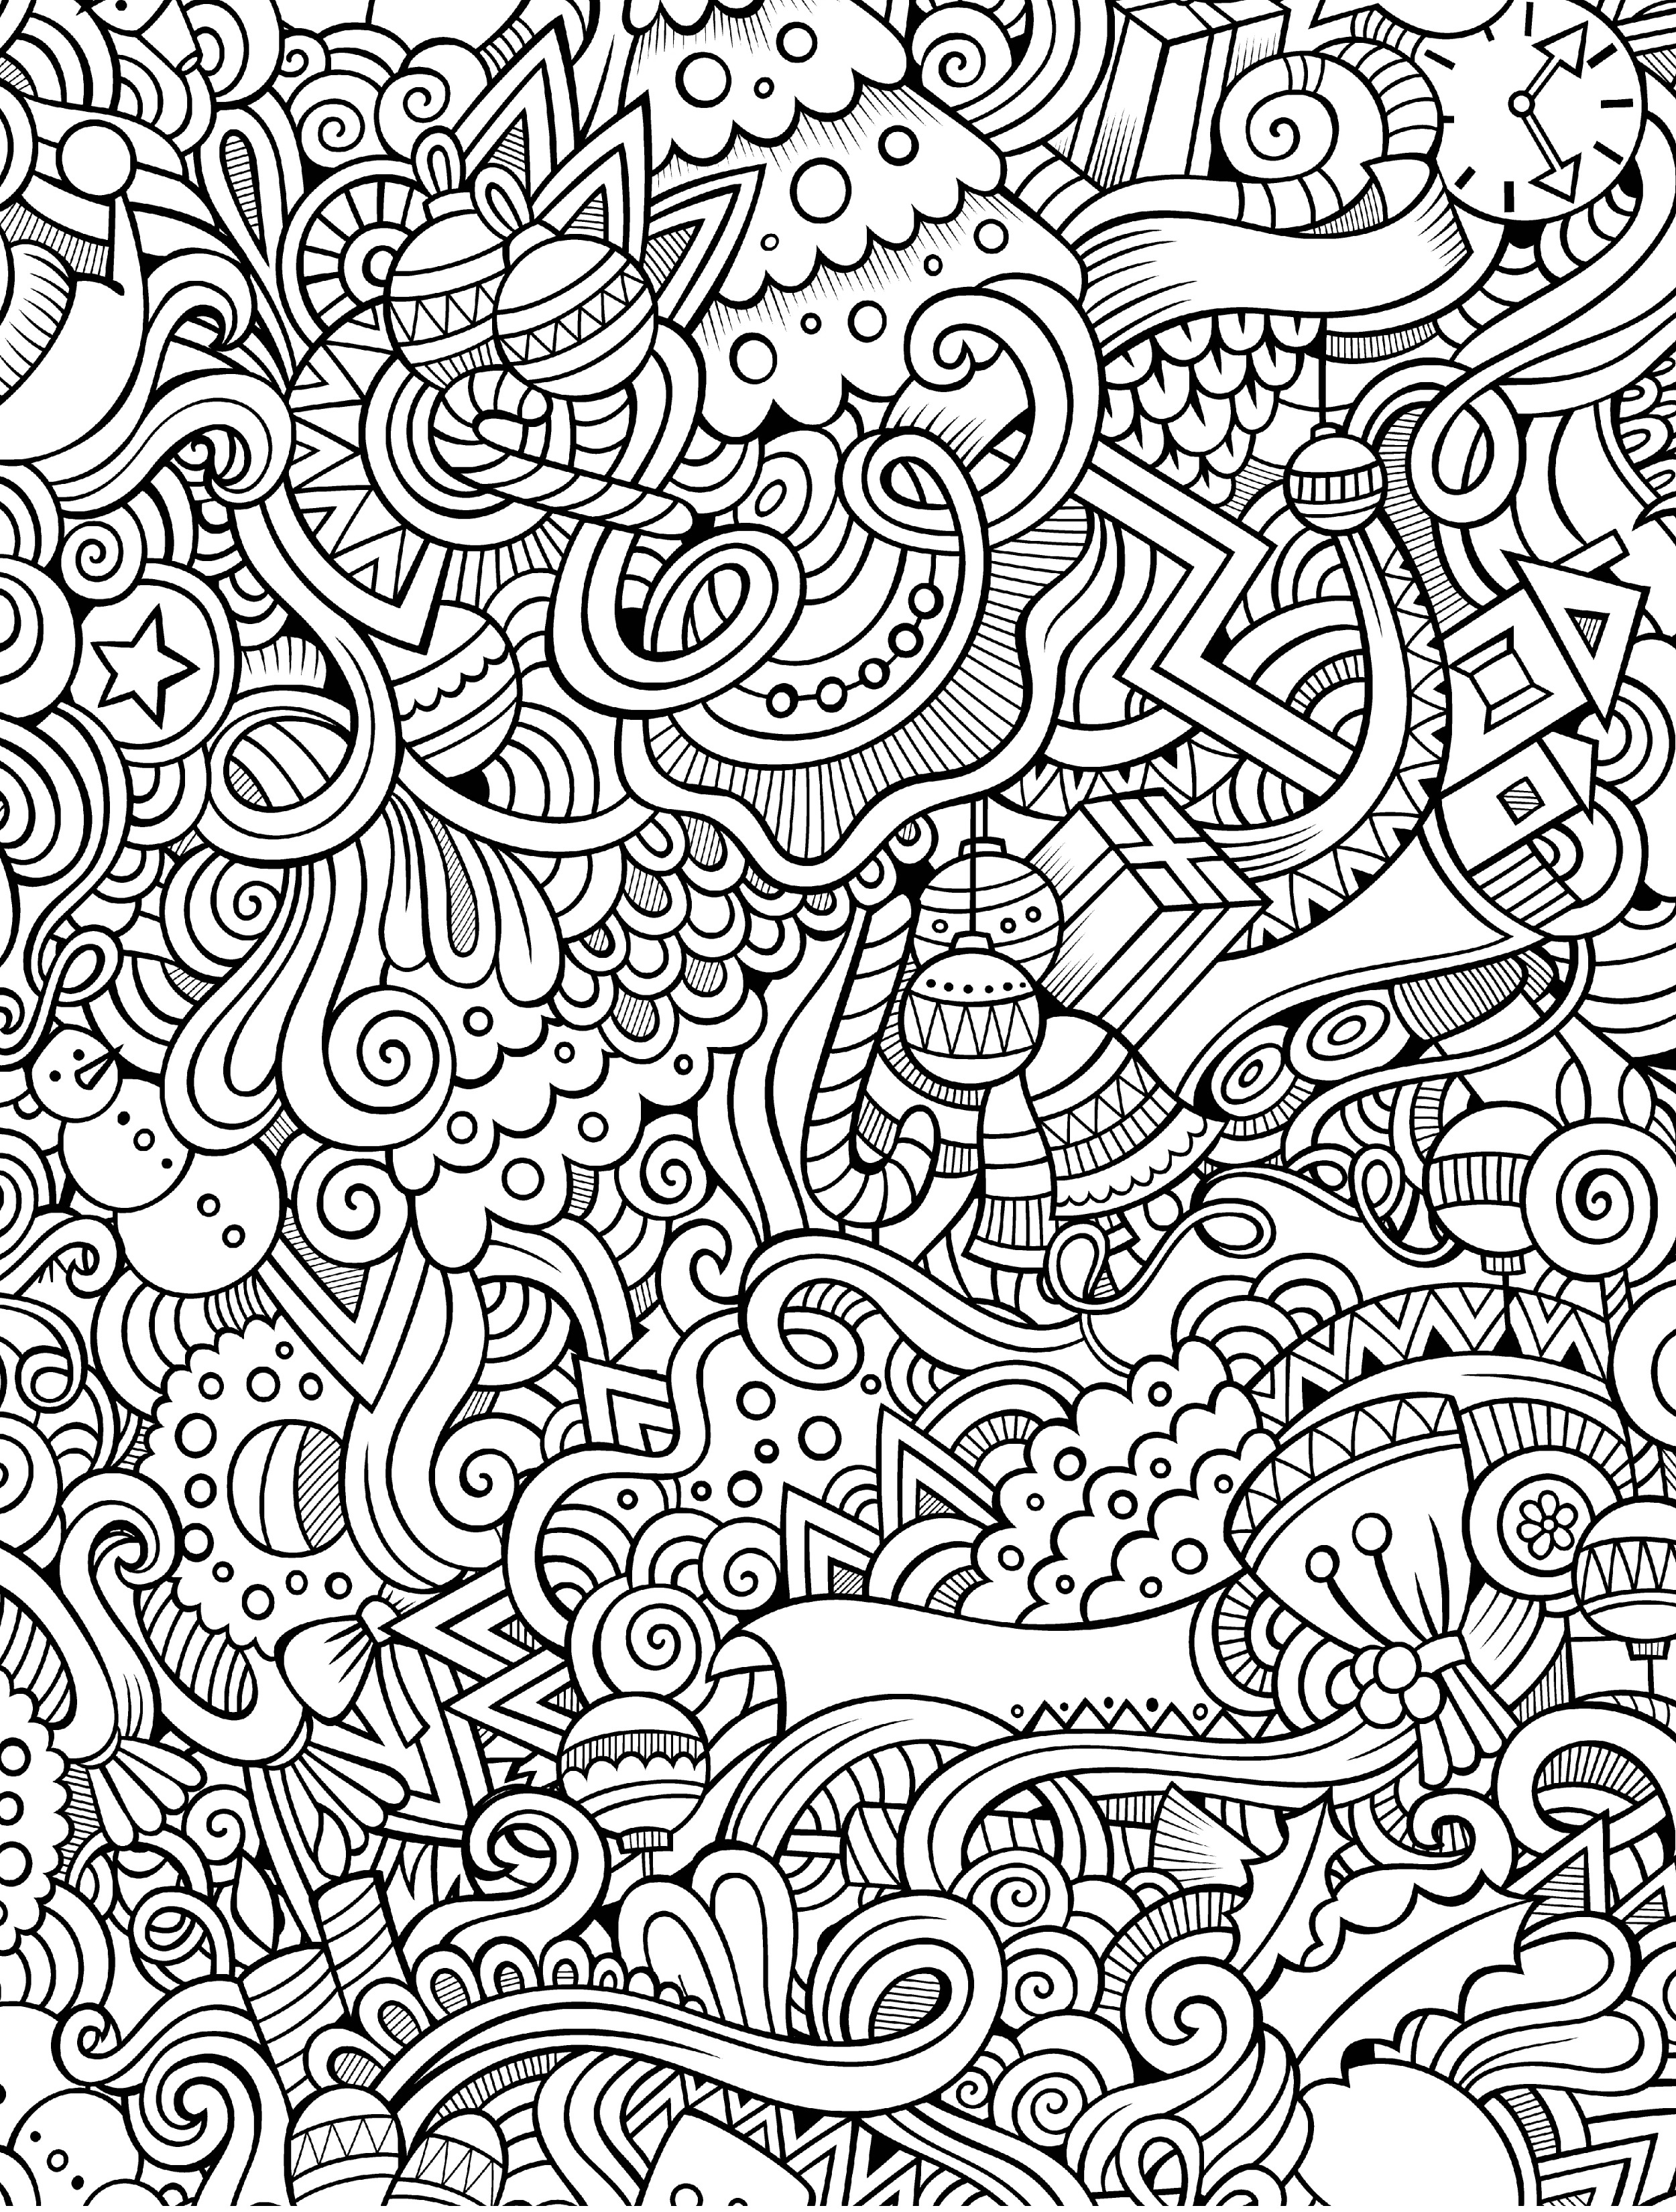 21 Great Image Of Coloring Pages For Adults Pdf Birijus Com